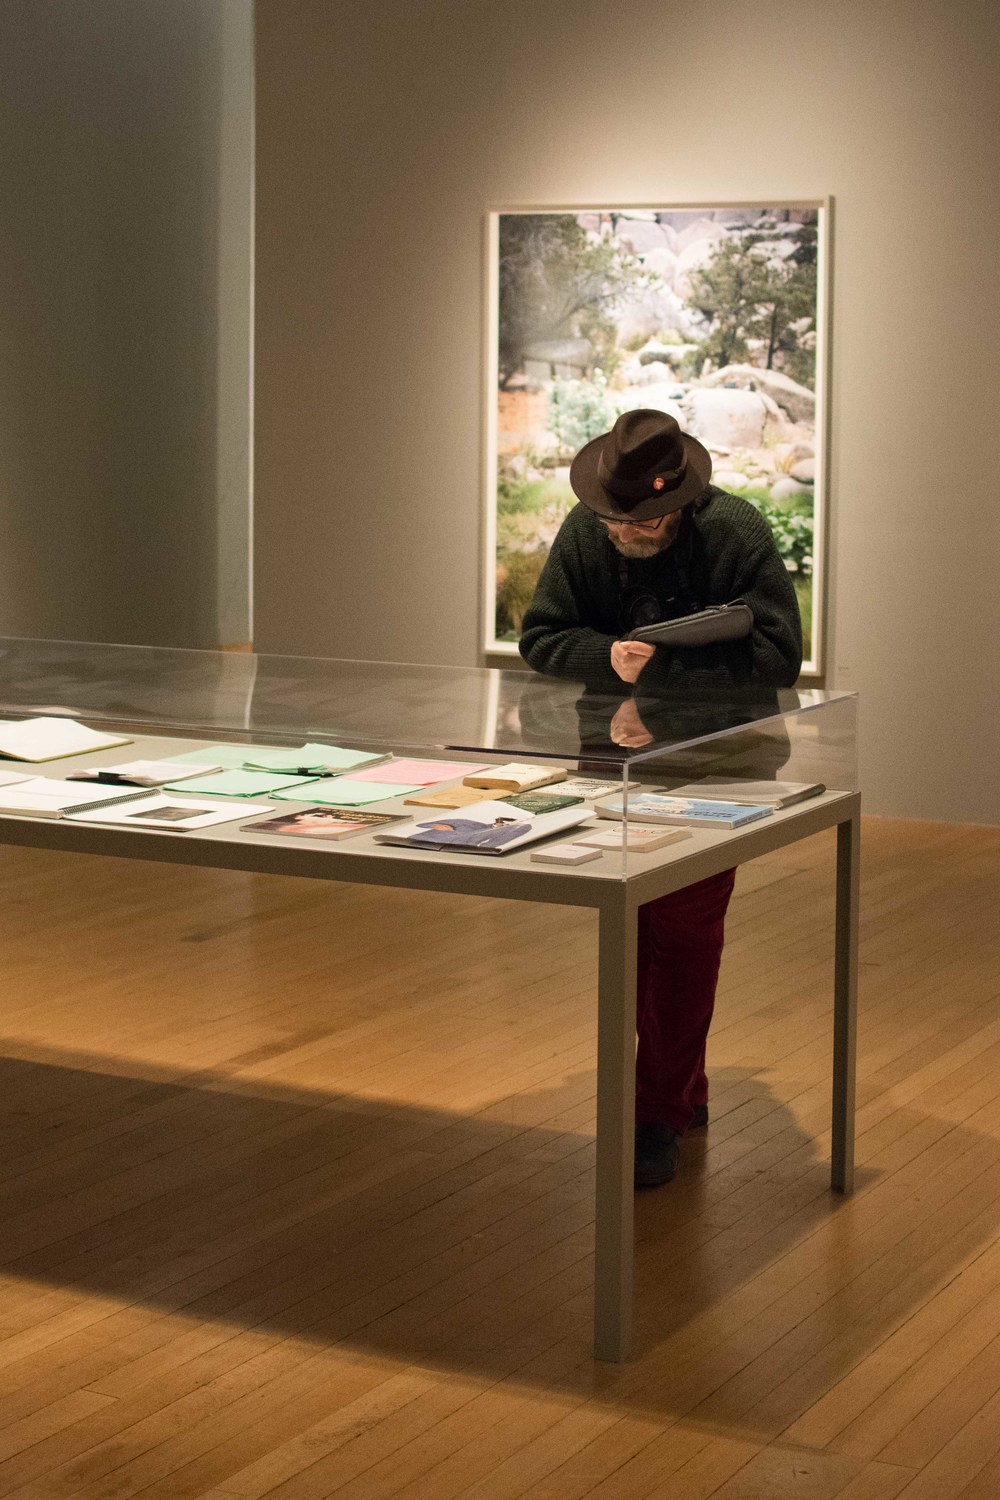 Amano studies the contents of a vitrine in the Broken Manual exhibition.